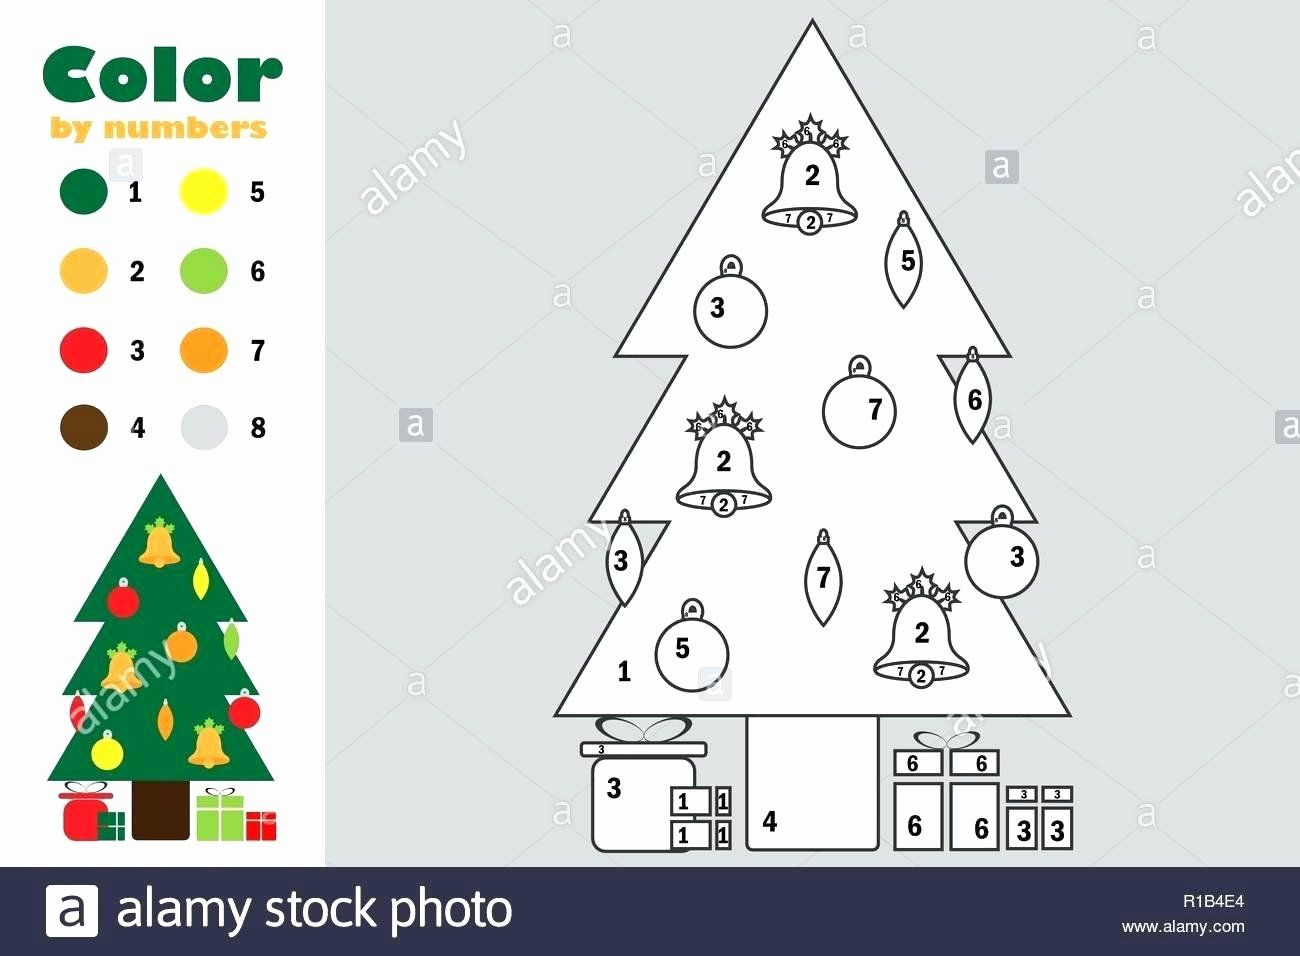 Coloring Cartoon Games Best Of Christmas Tree Color By Number Coloring Pages Regionpaper Tree Coloring Page Christmas Tree Pictures Coloring Pages